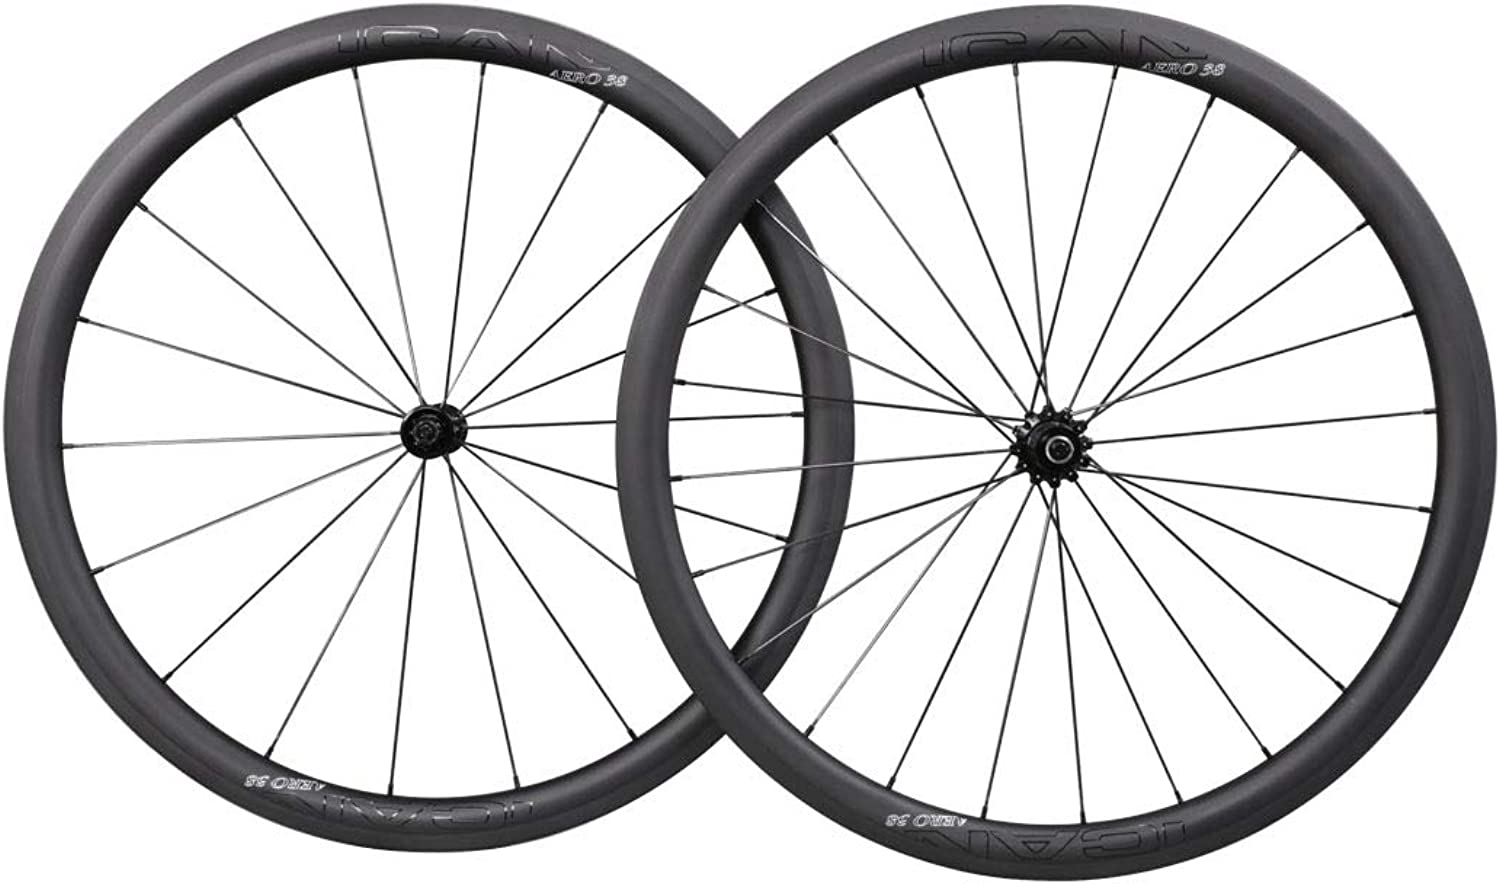 ICAN Carbon Wheelset Lightweight 1433g Road Bike Wheels 38mm Deep 27mm Width Clincher Tubeless Ready with Straight Pull Hub 18 24 Holes